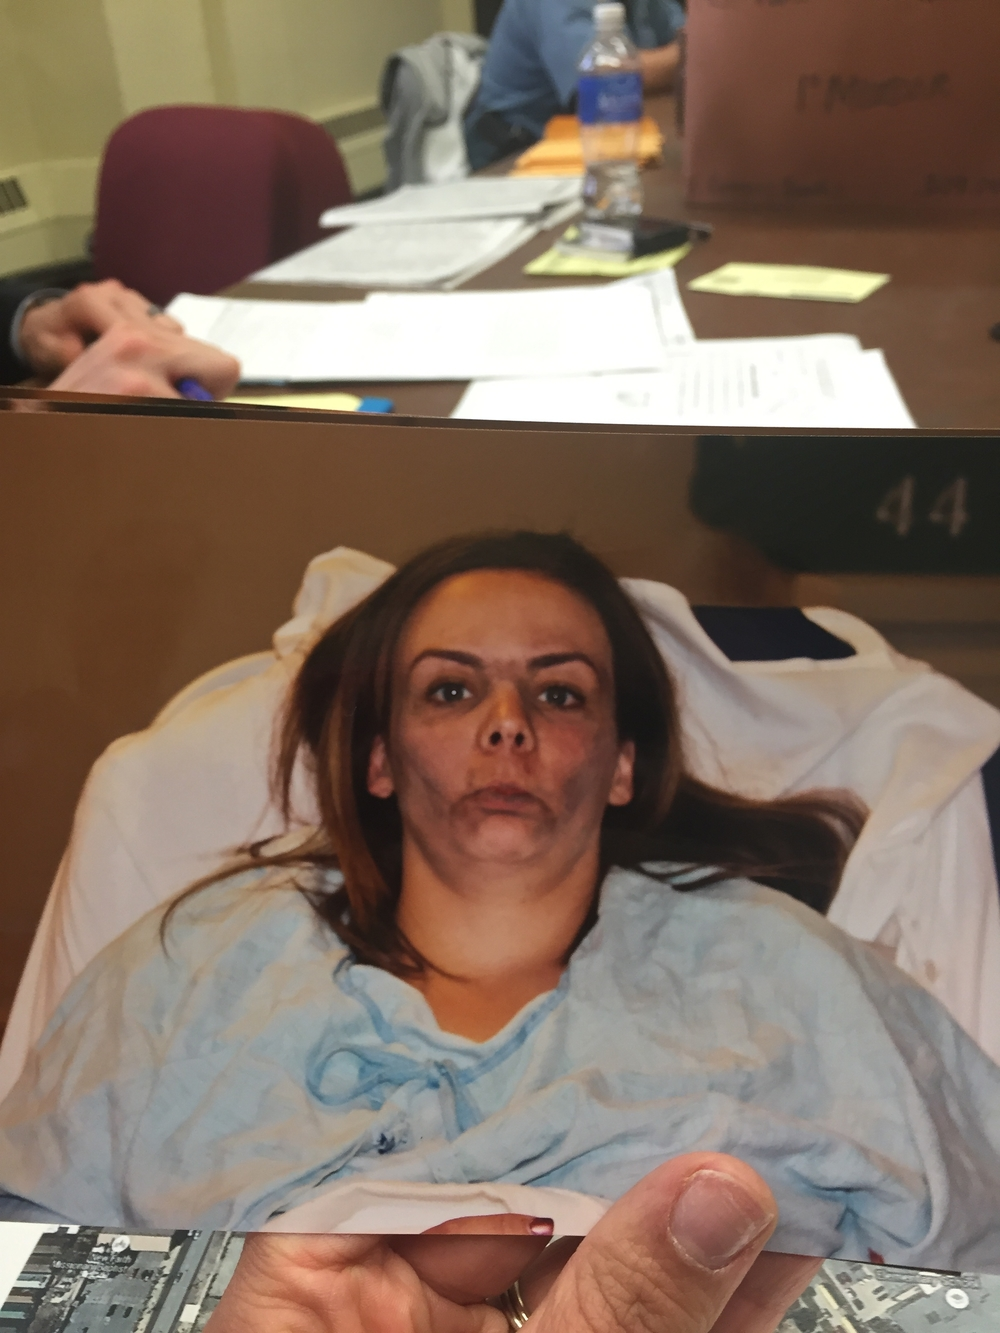 Photo of Muphy in hospital after being dragged underneath a car.